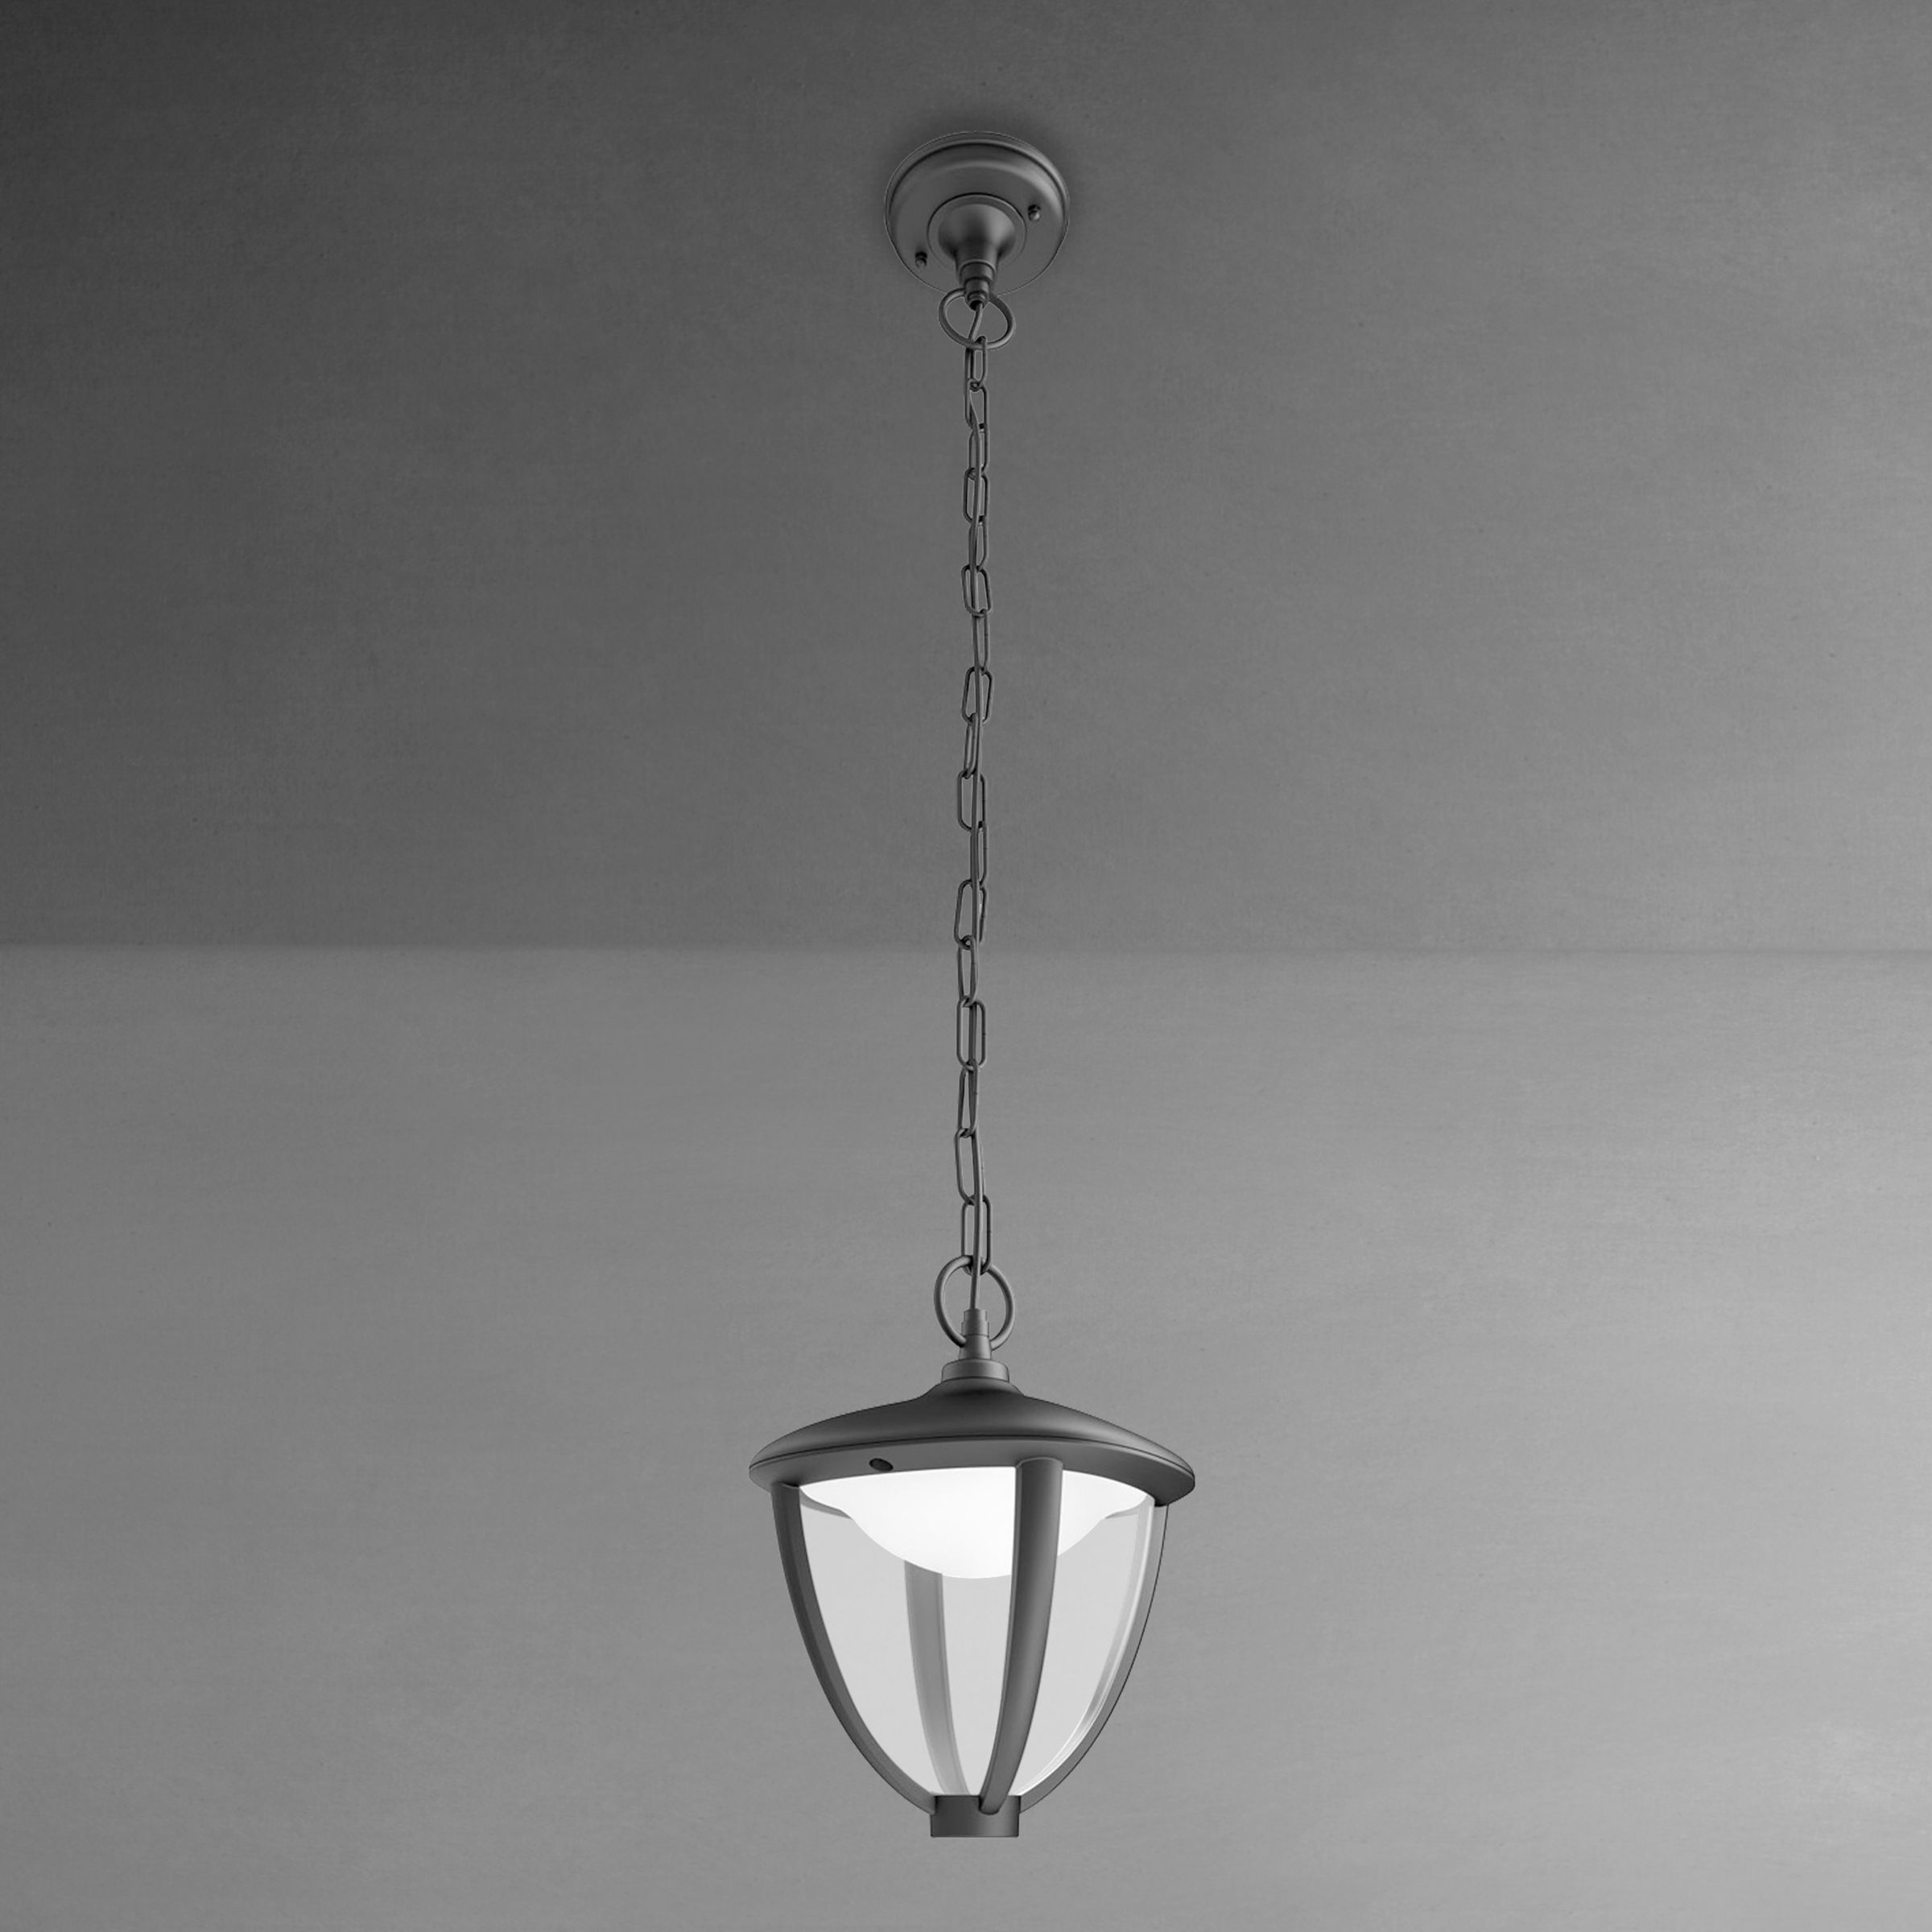 Philips Wall Hanging Lights : Buy Philips Robin Outdoor Lantern Ceiling Light, Black John Lewis